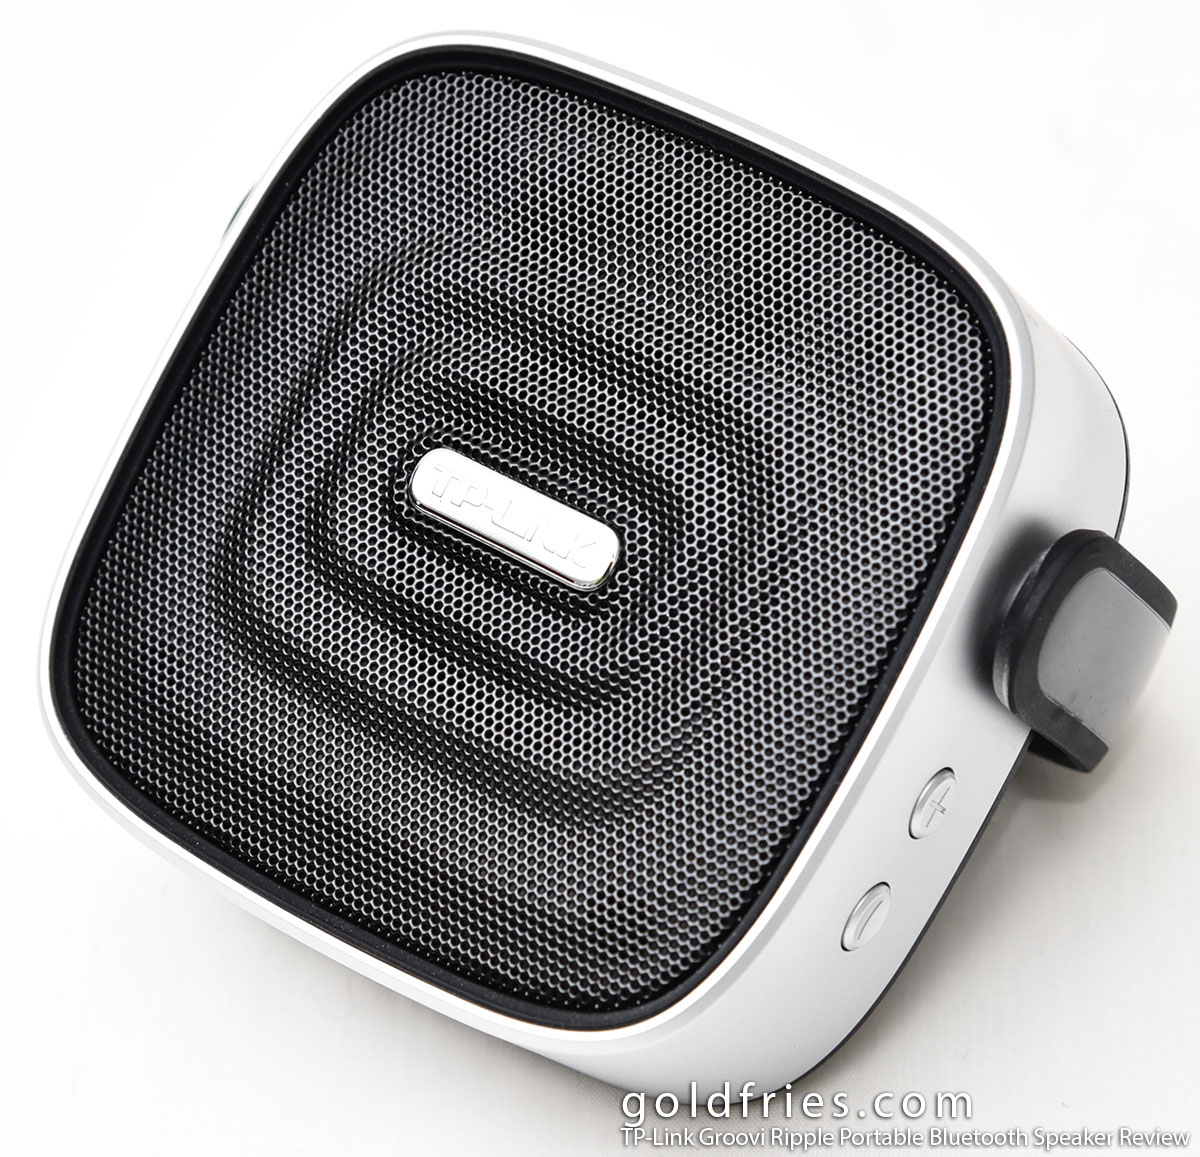 TP-Link Groovi Ripple Portable Bluetooth Speaker Review